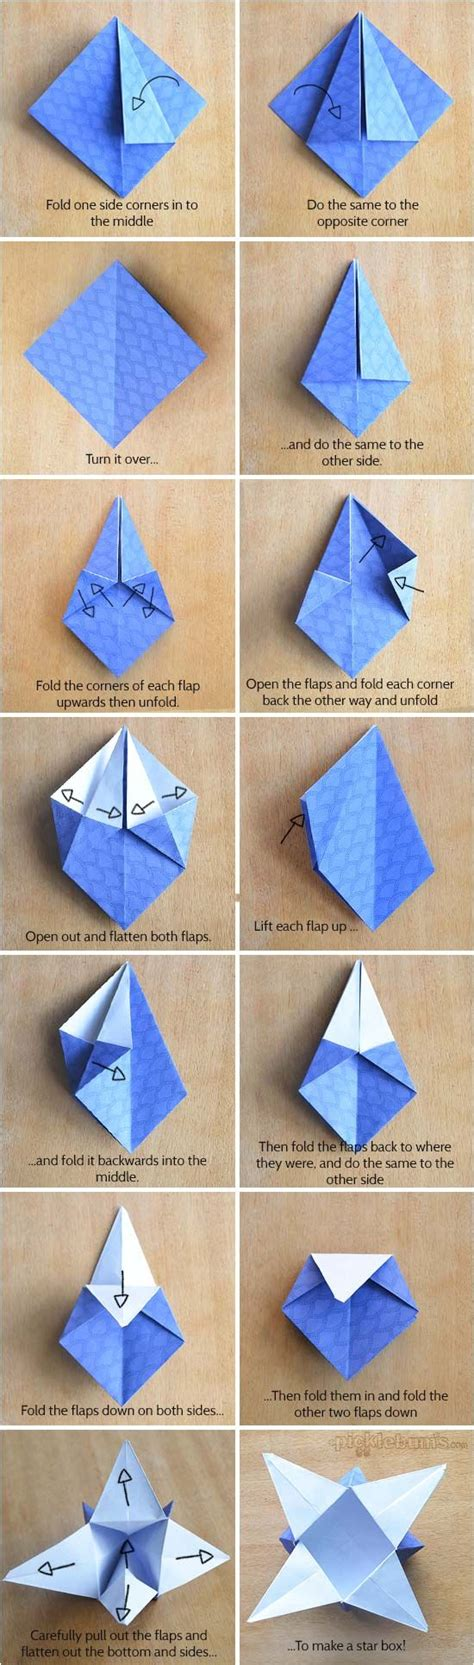 How Do You Make A Origami - origami paper tutorials and origami on